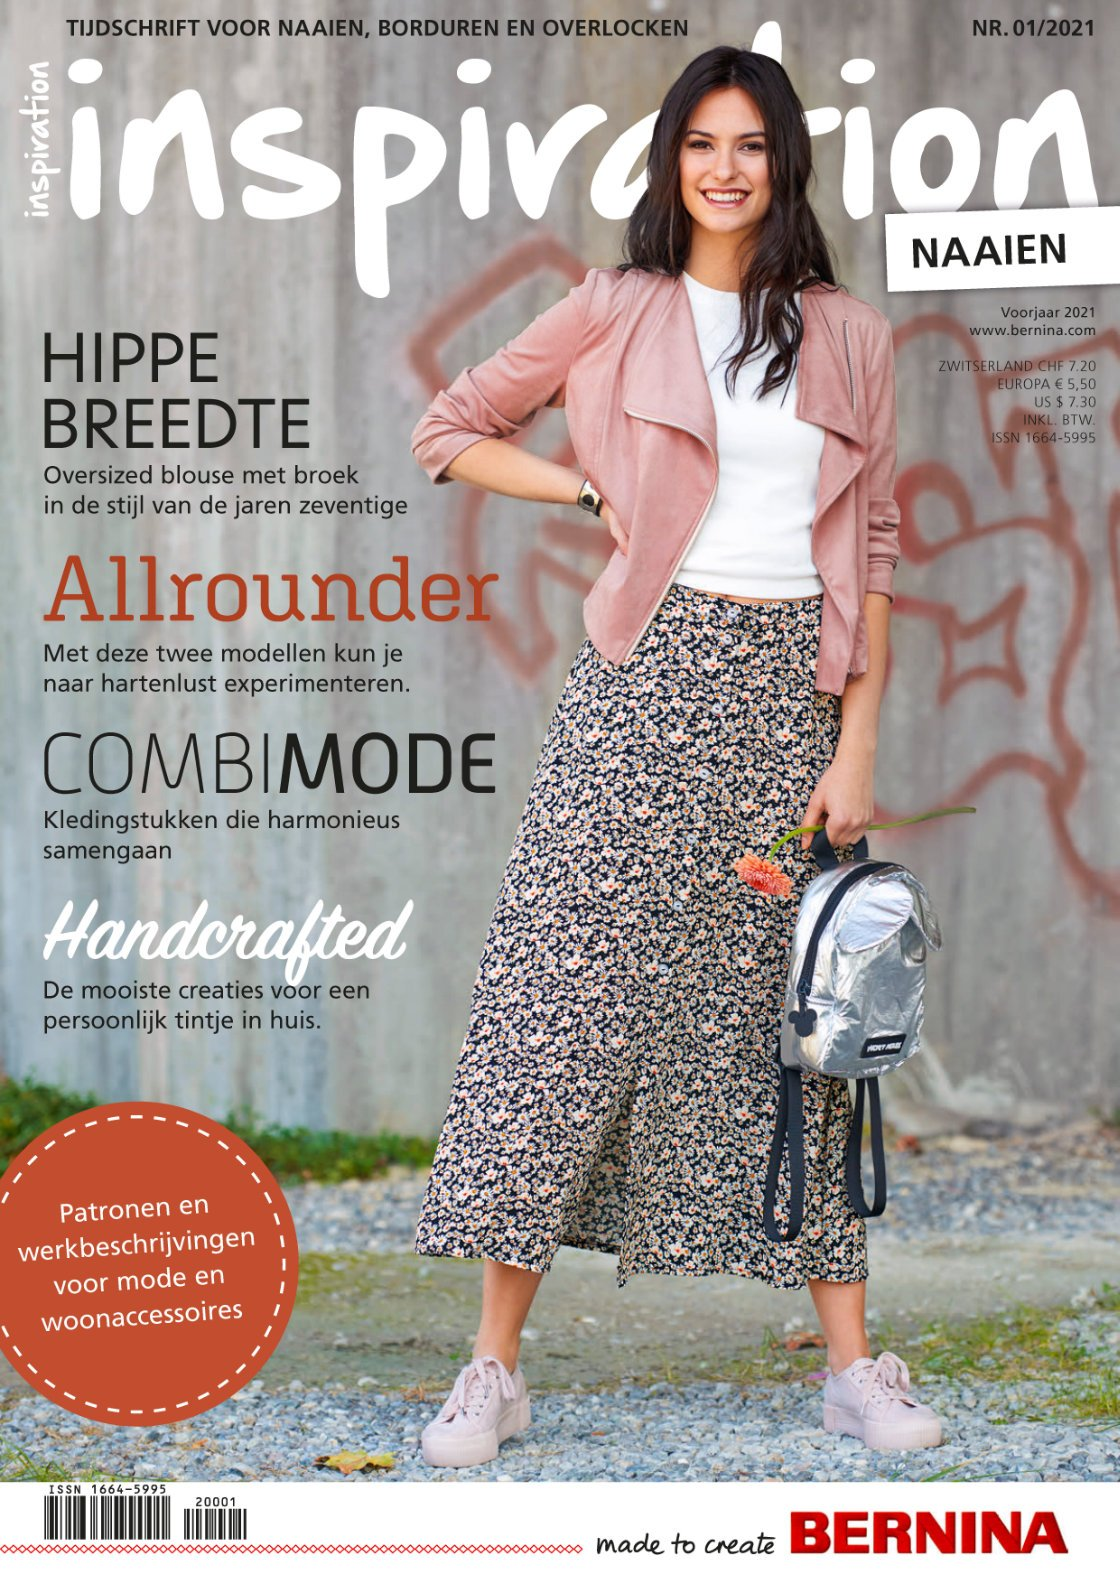 inspirationShop_Magazine_Cover_211-NL